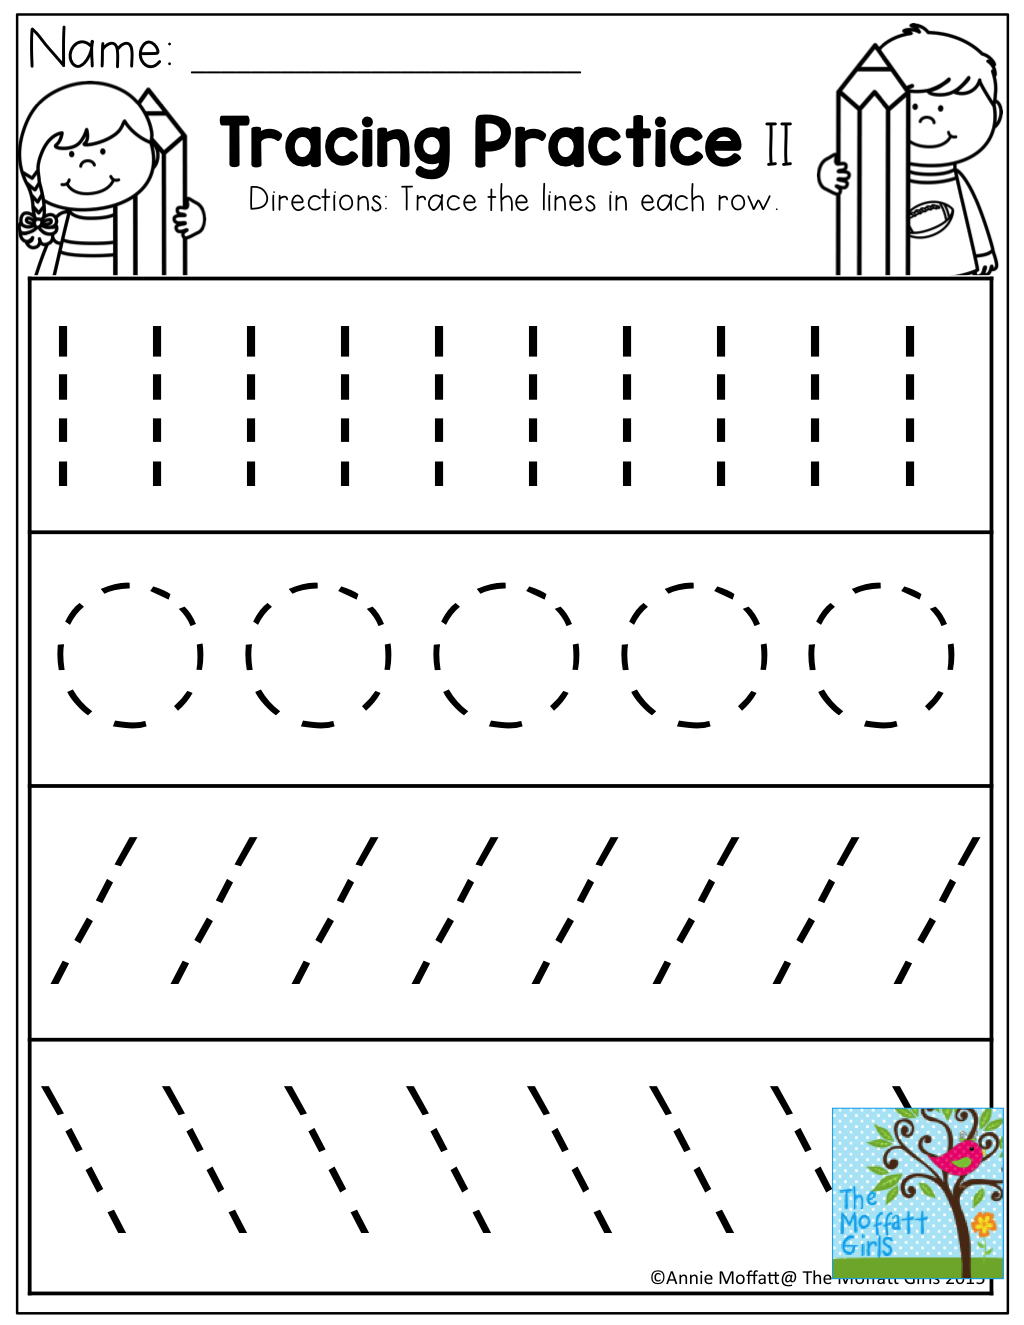 Worksheets Tracing Worksheets For Kindergarten tracing practice tons of printable for pre k kindergarten 1st grade 2nd and 3rd grade